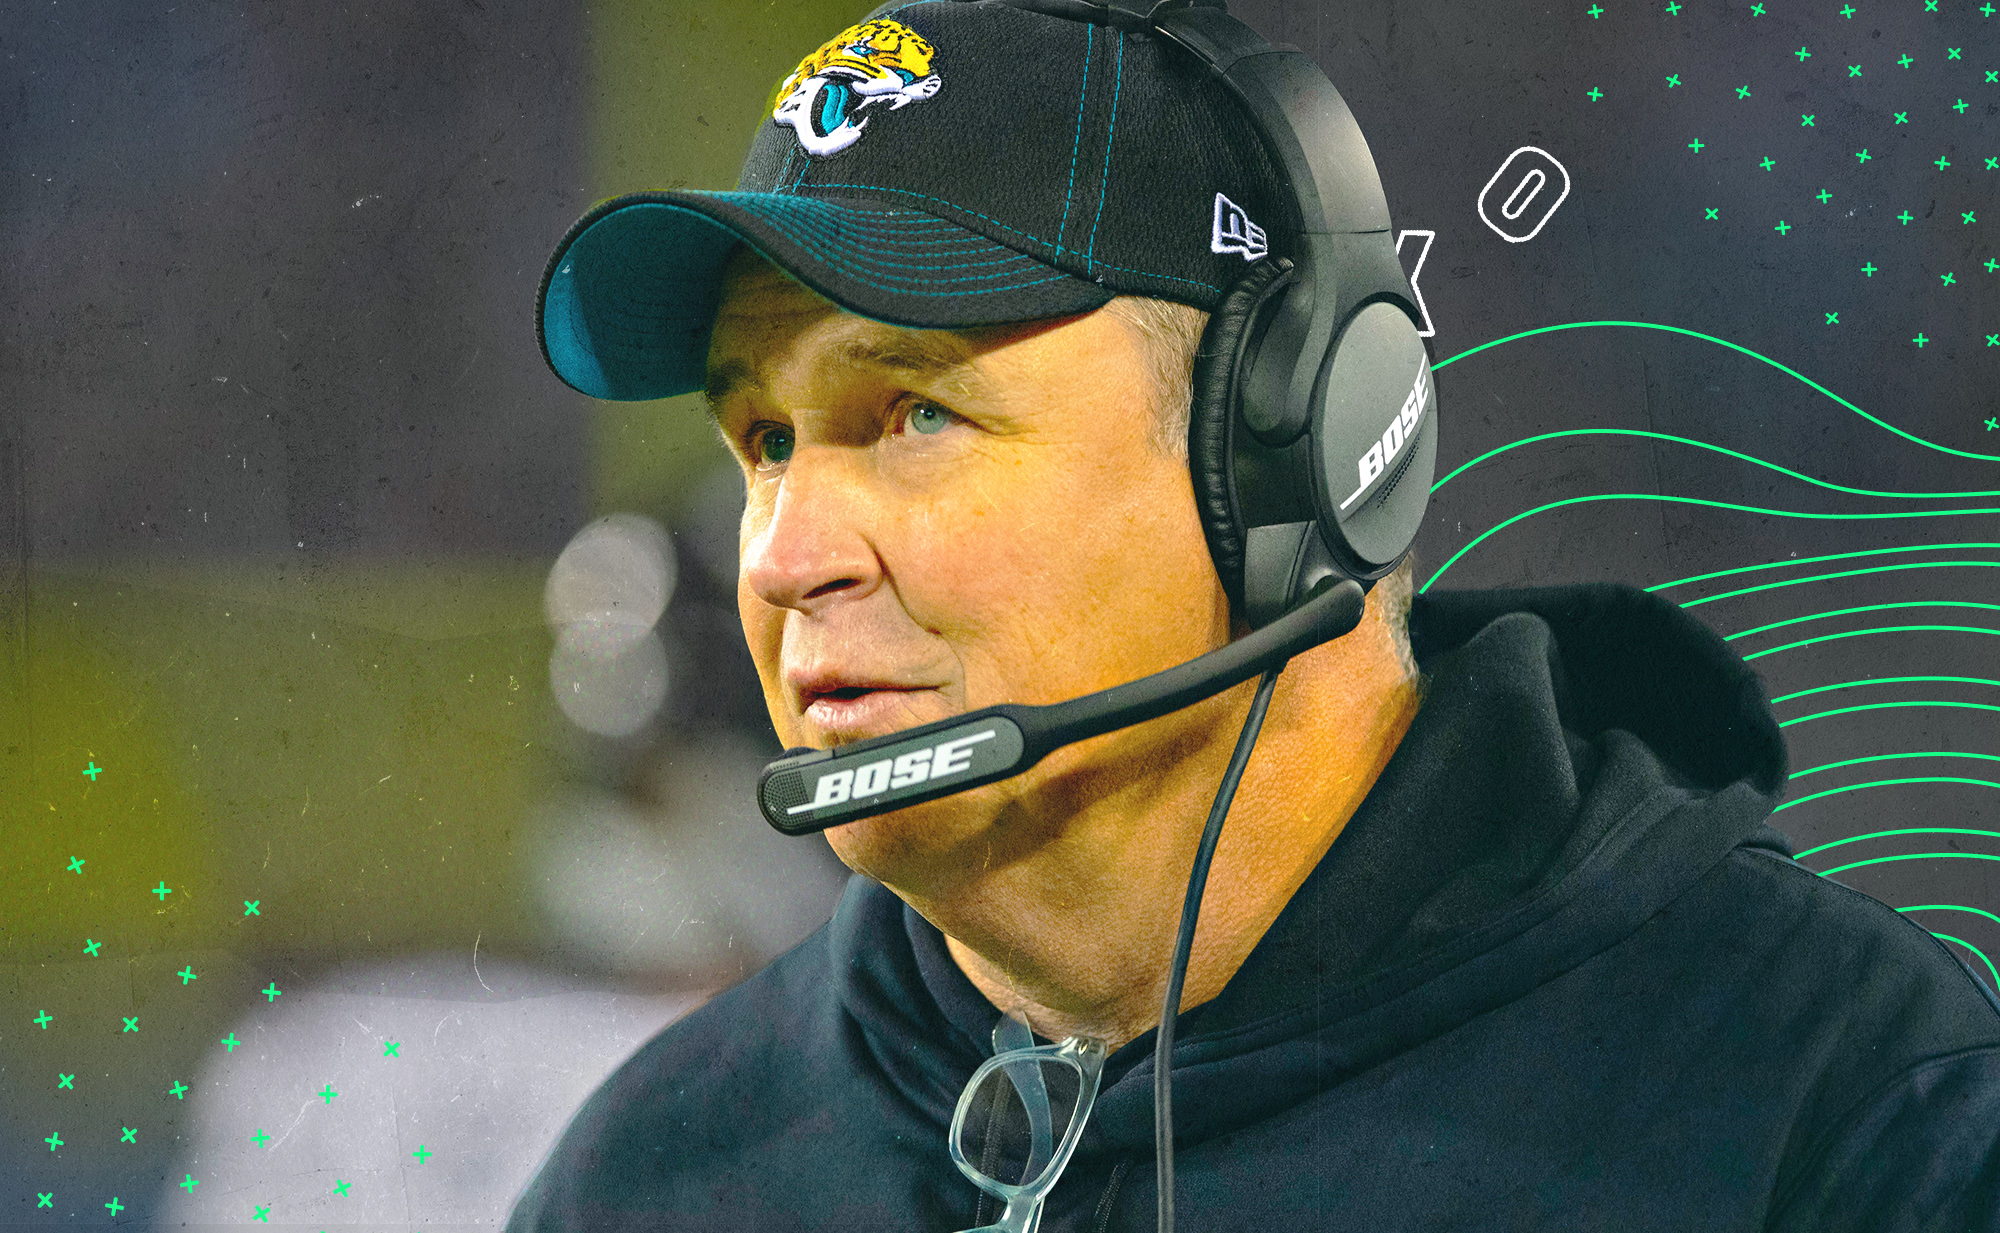 Jacksonville coach Doug Marrone looks into the distance, wearing a head set and a Jaguars hat